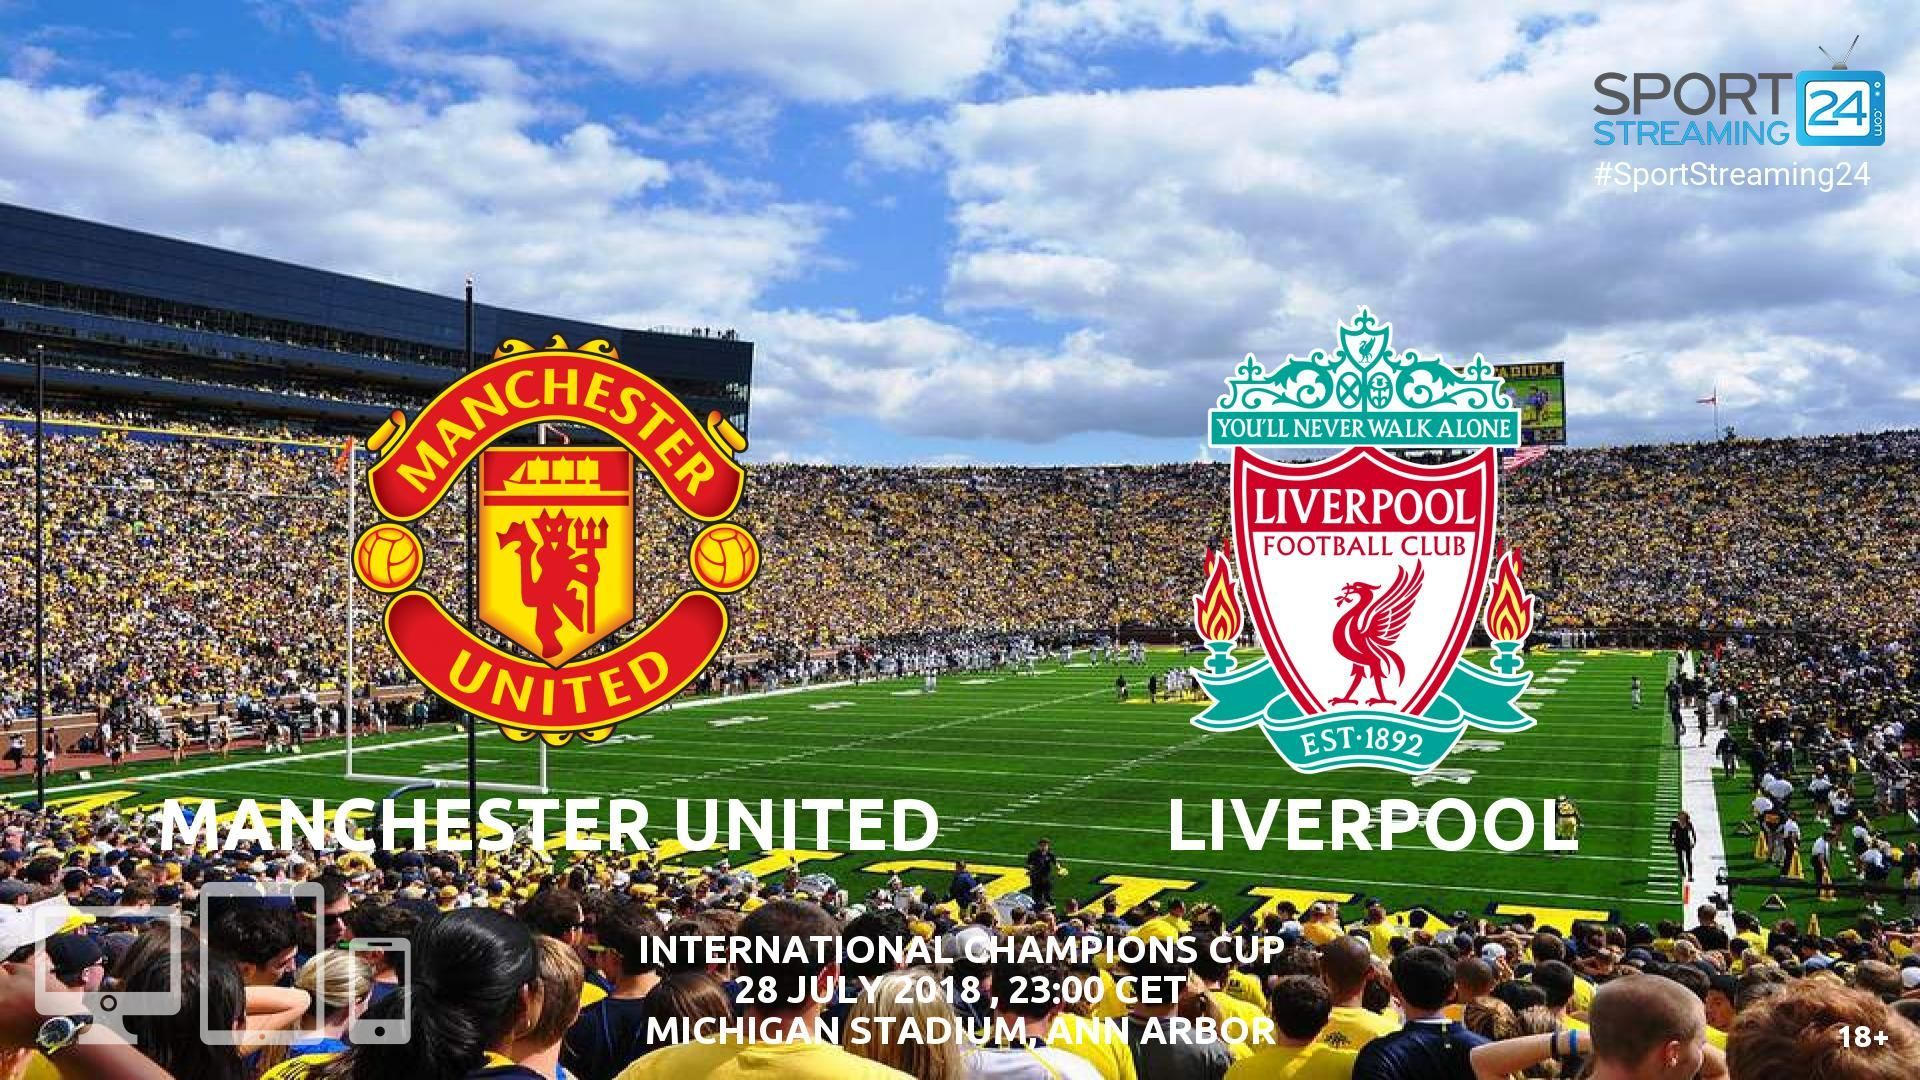 Streaming News And Match Previews Sportstreaming24 United Liverpool Manchester United Liverpool Live